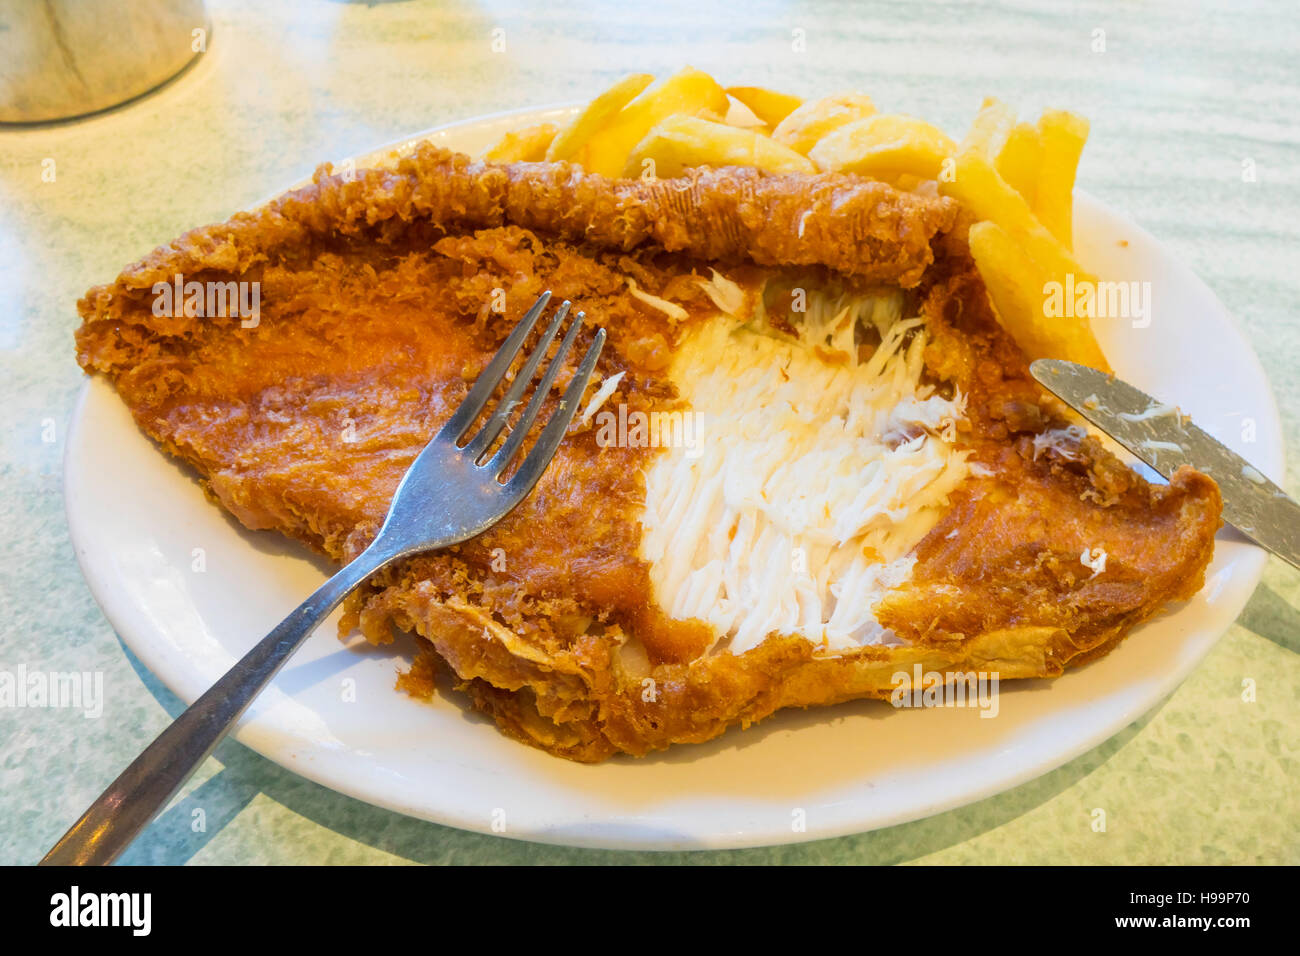 Special fish chips made with Skate at a cafe in Whitby Yorkshire England - Stock Image